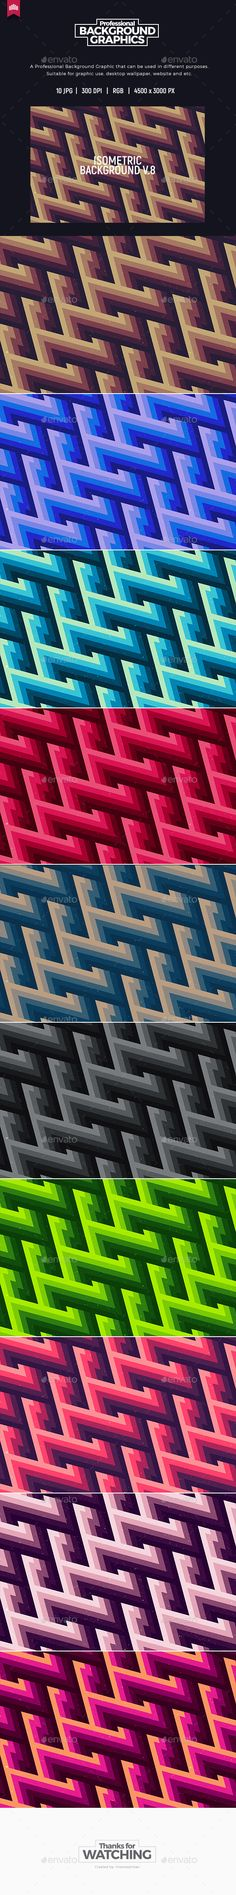 Isometric Background V.8 - Abstract #Backgrounds Download here: https://graphicriver.net/item/isometric-background-v8/20392624?ref=alena994